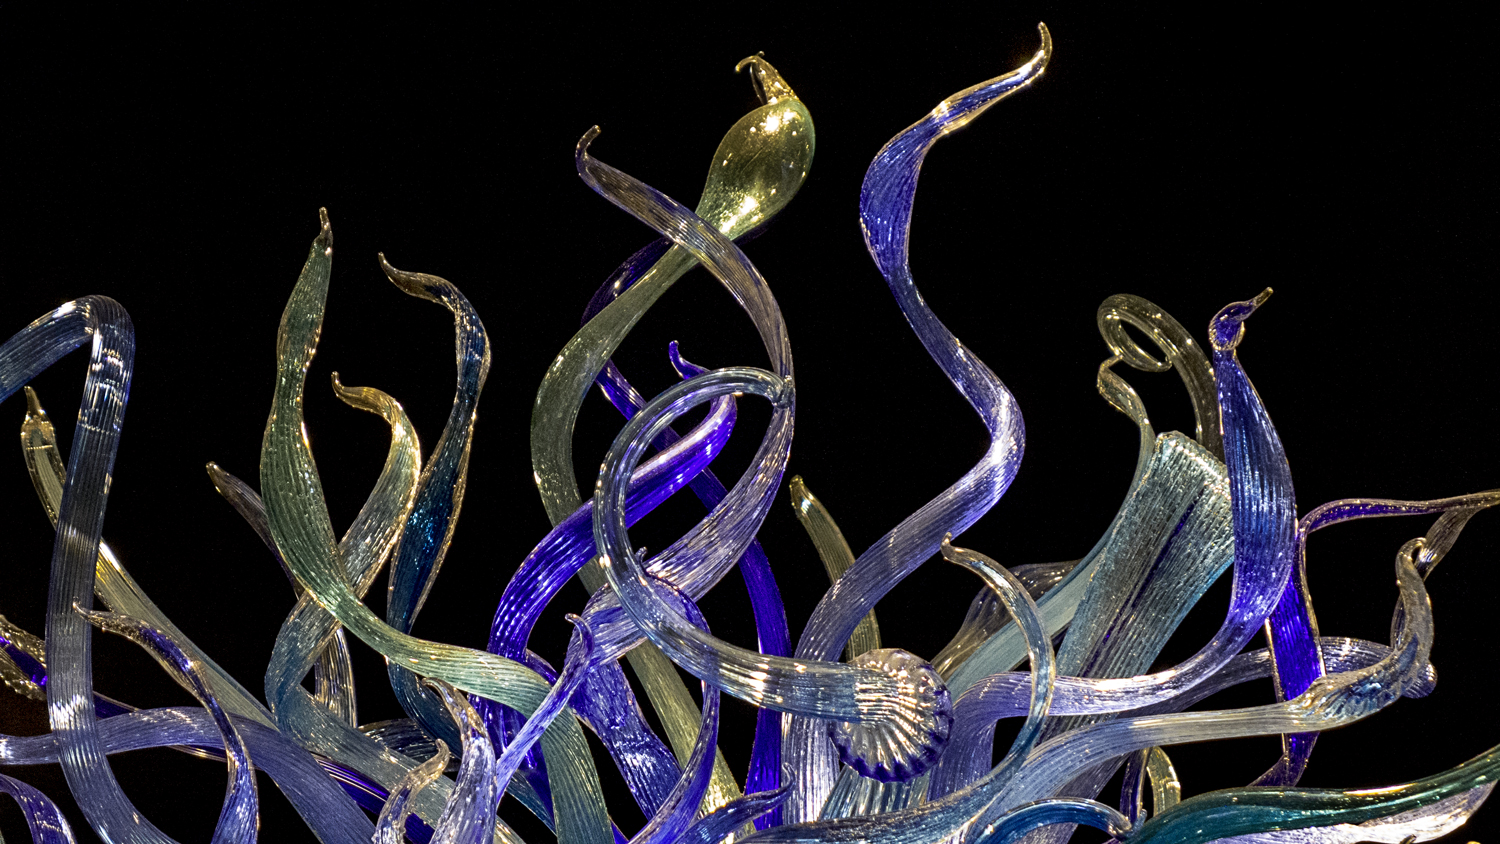 VicHuber-Website-ChihulyMuseum-L1240147.jpg